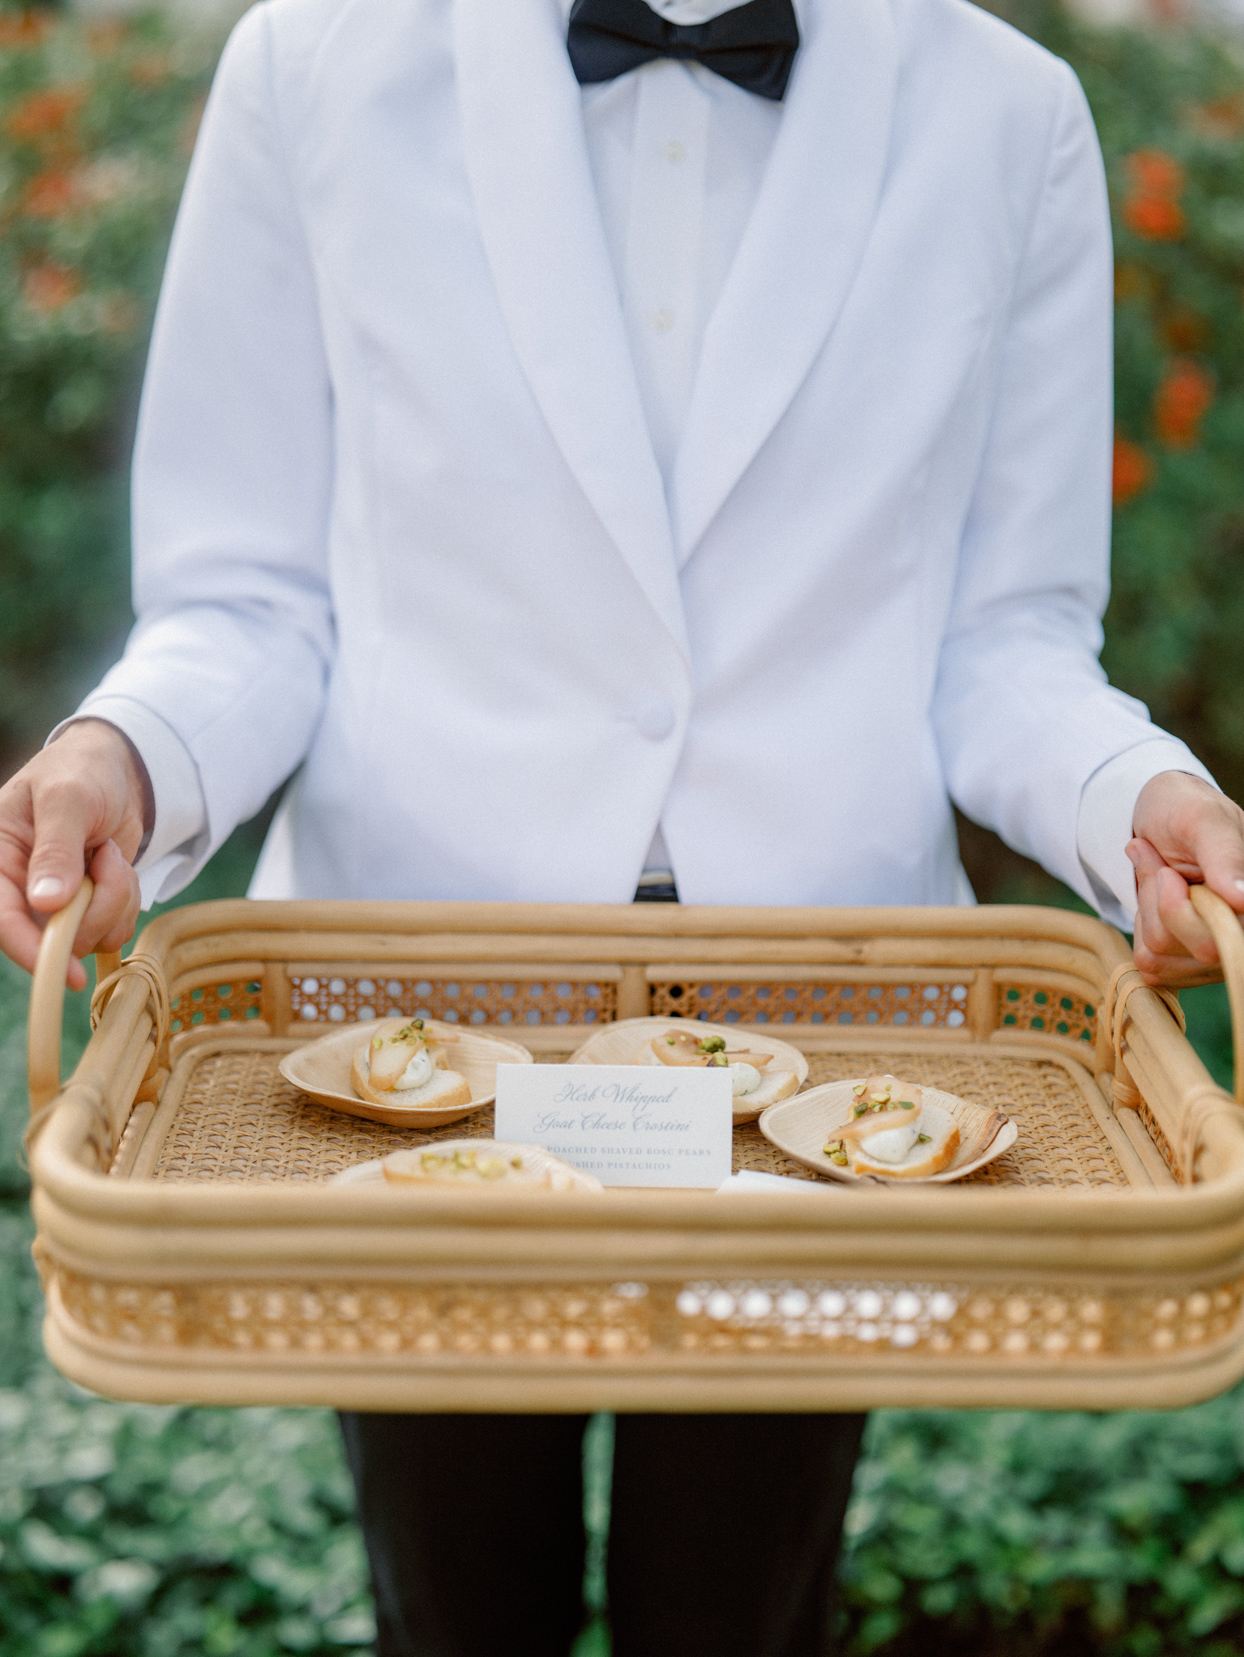 black and white tux server holding wicker serving tray with appetizers